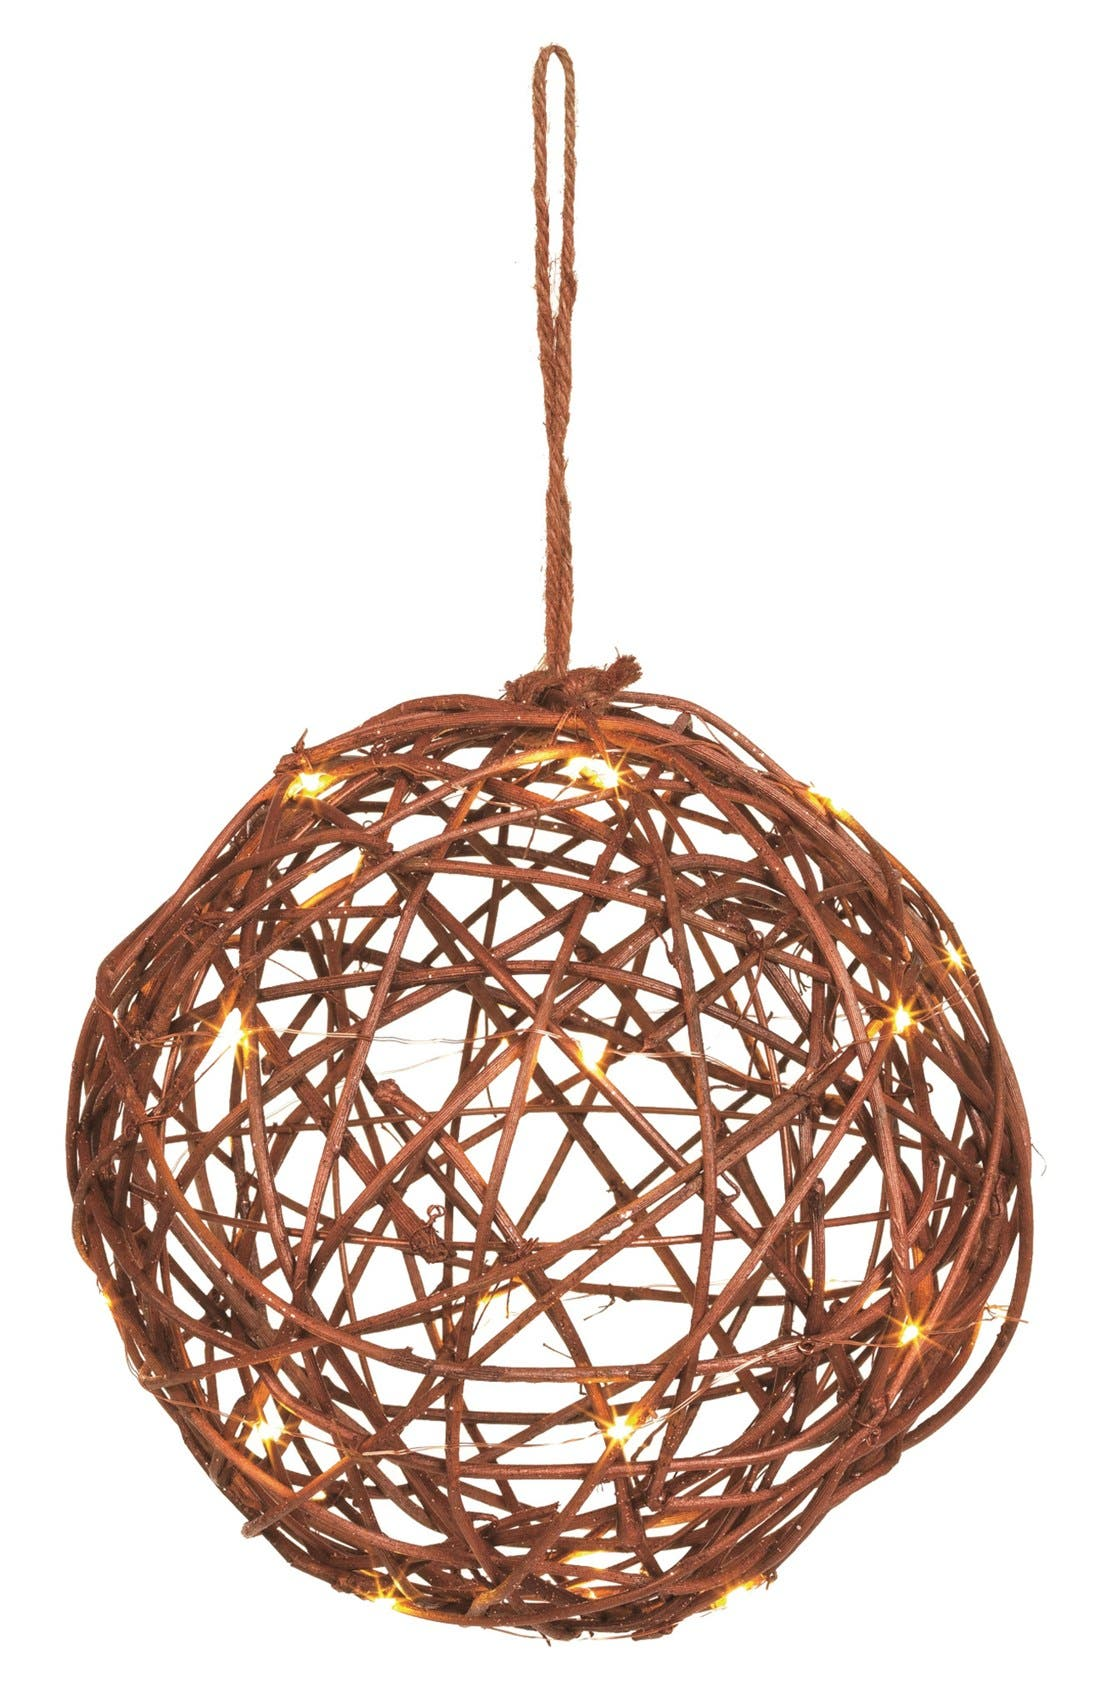 Alternate Image 1 Selected - Sage & Co. Light Up Rattan & Wire Ball Ornament